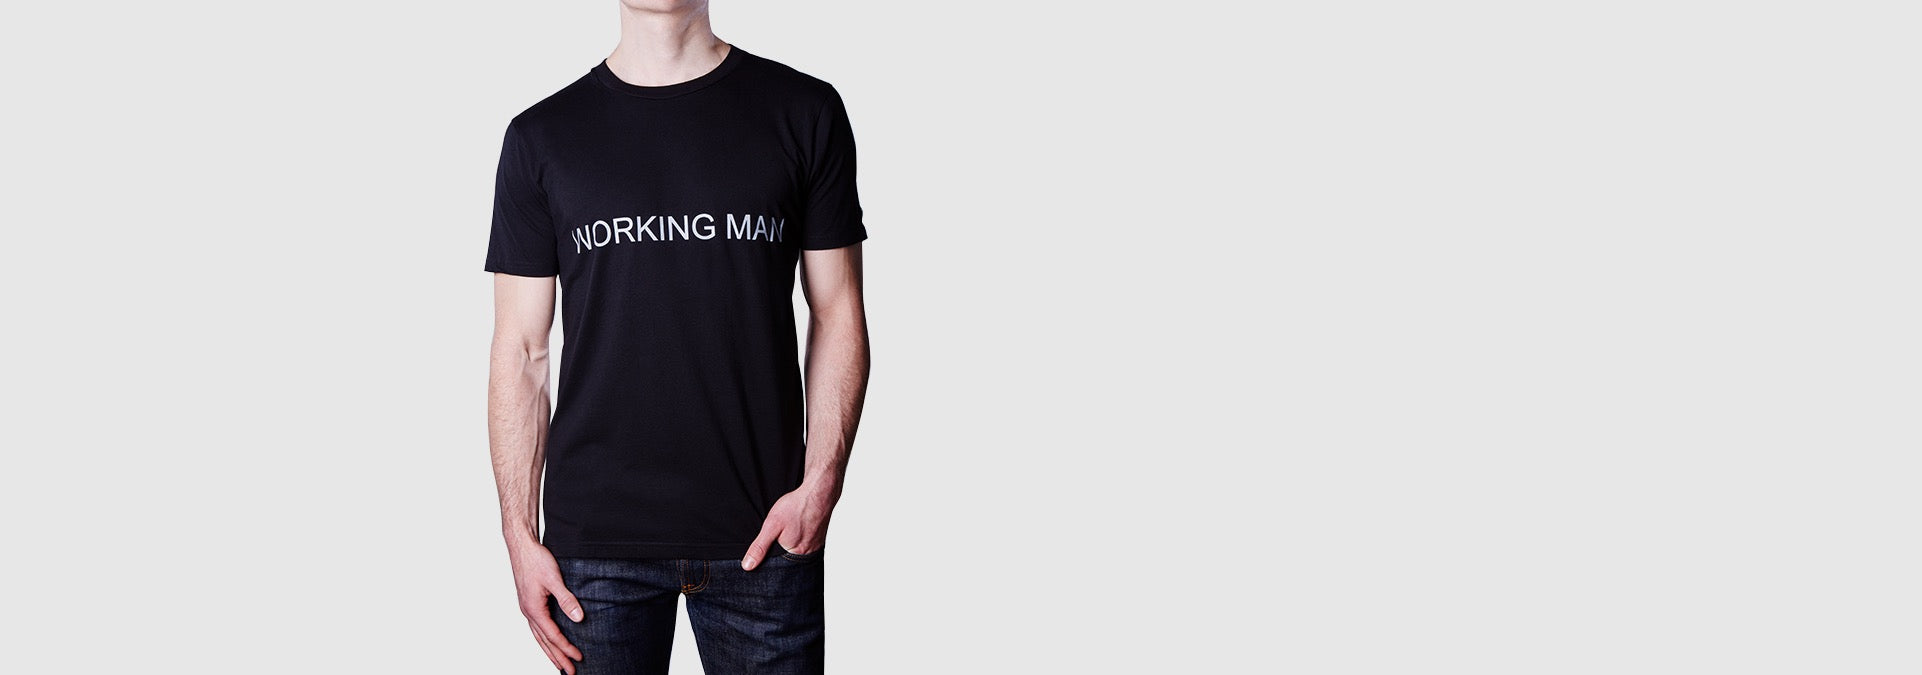 Working Man T-Shirt Black